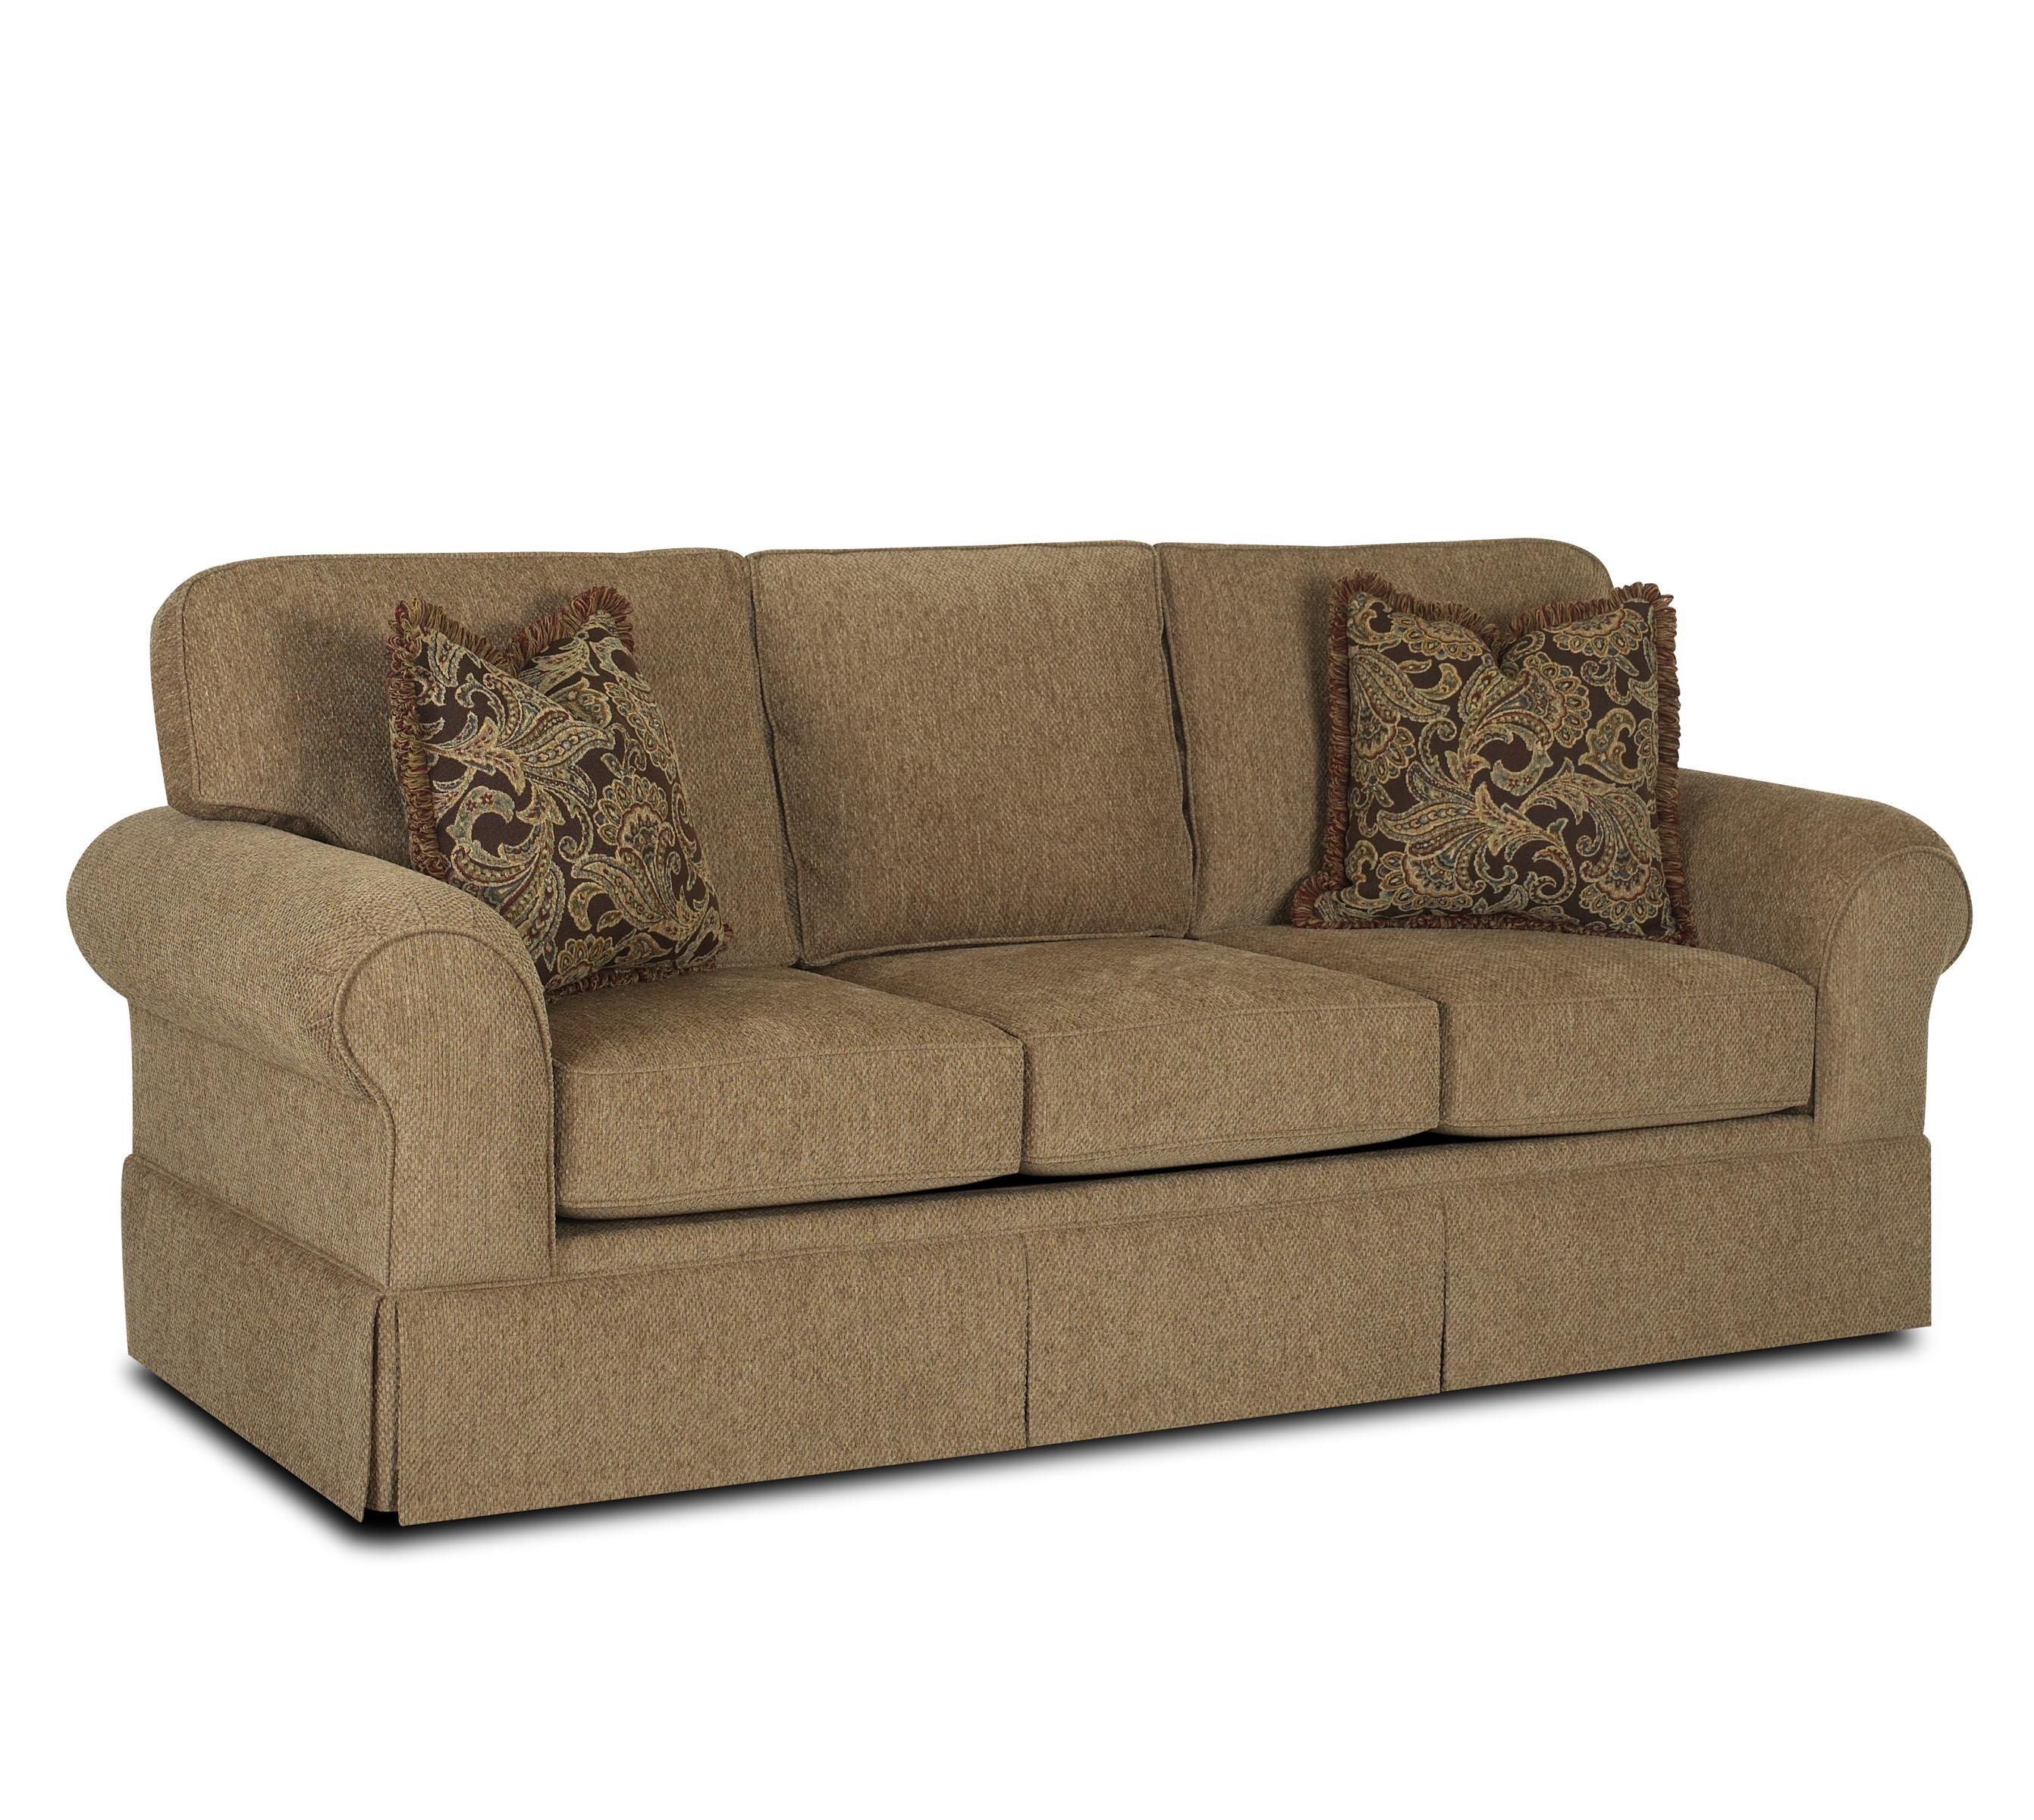 Casual skirted sofa by klaussner wolf and gardiner wolf for Casual couch